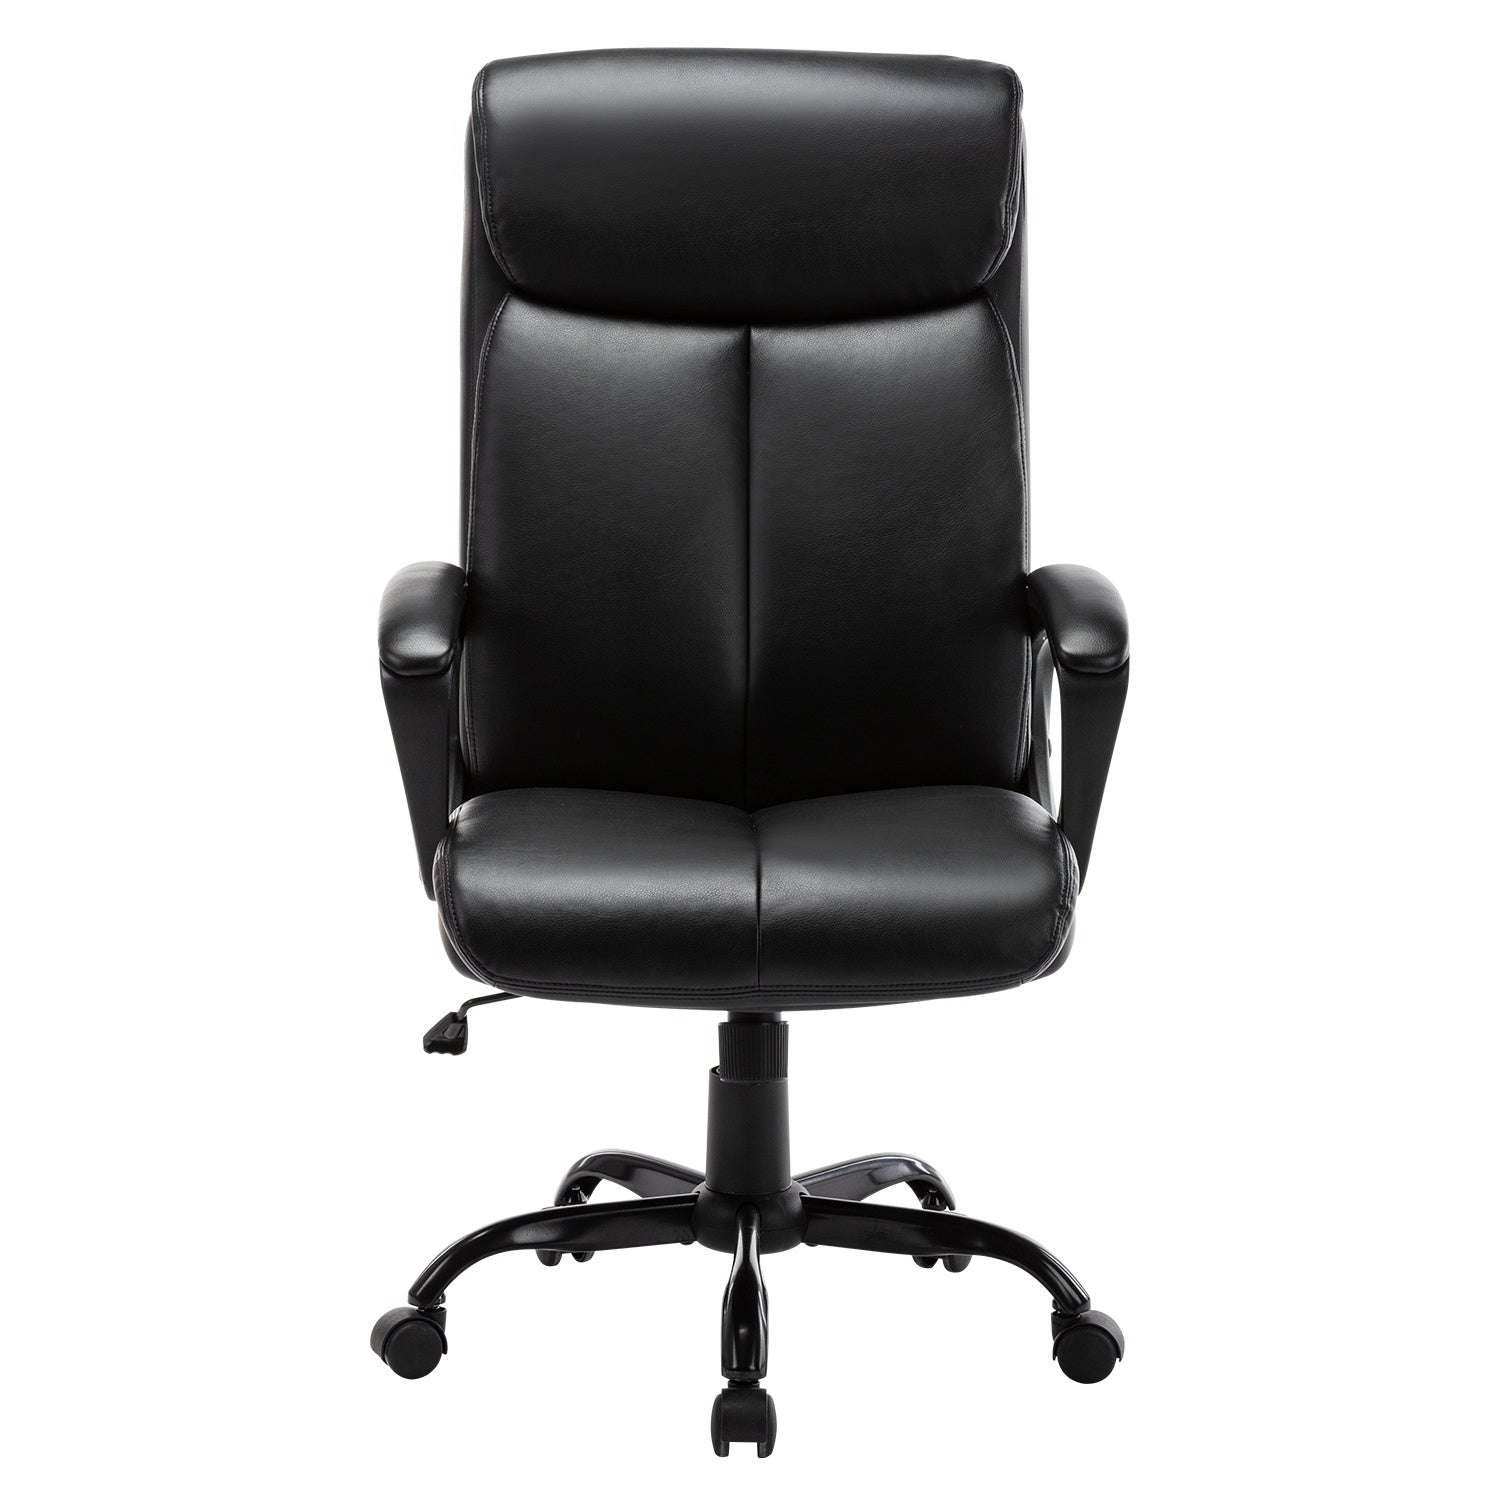 Wess Executive Bonded Leather Chair - Qwork Office Furniture